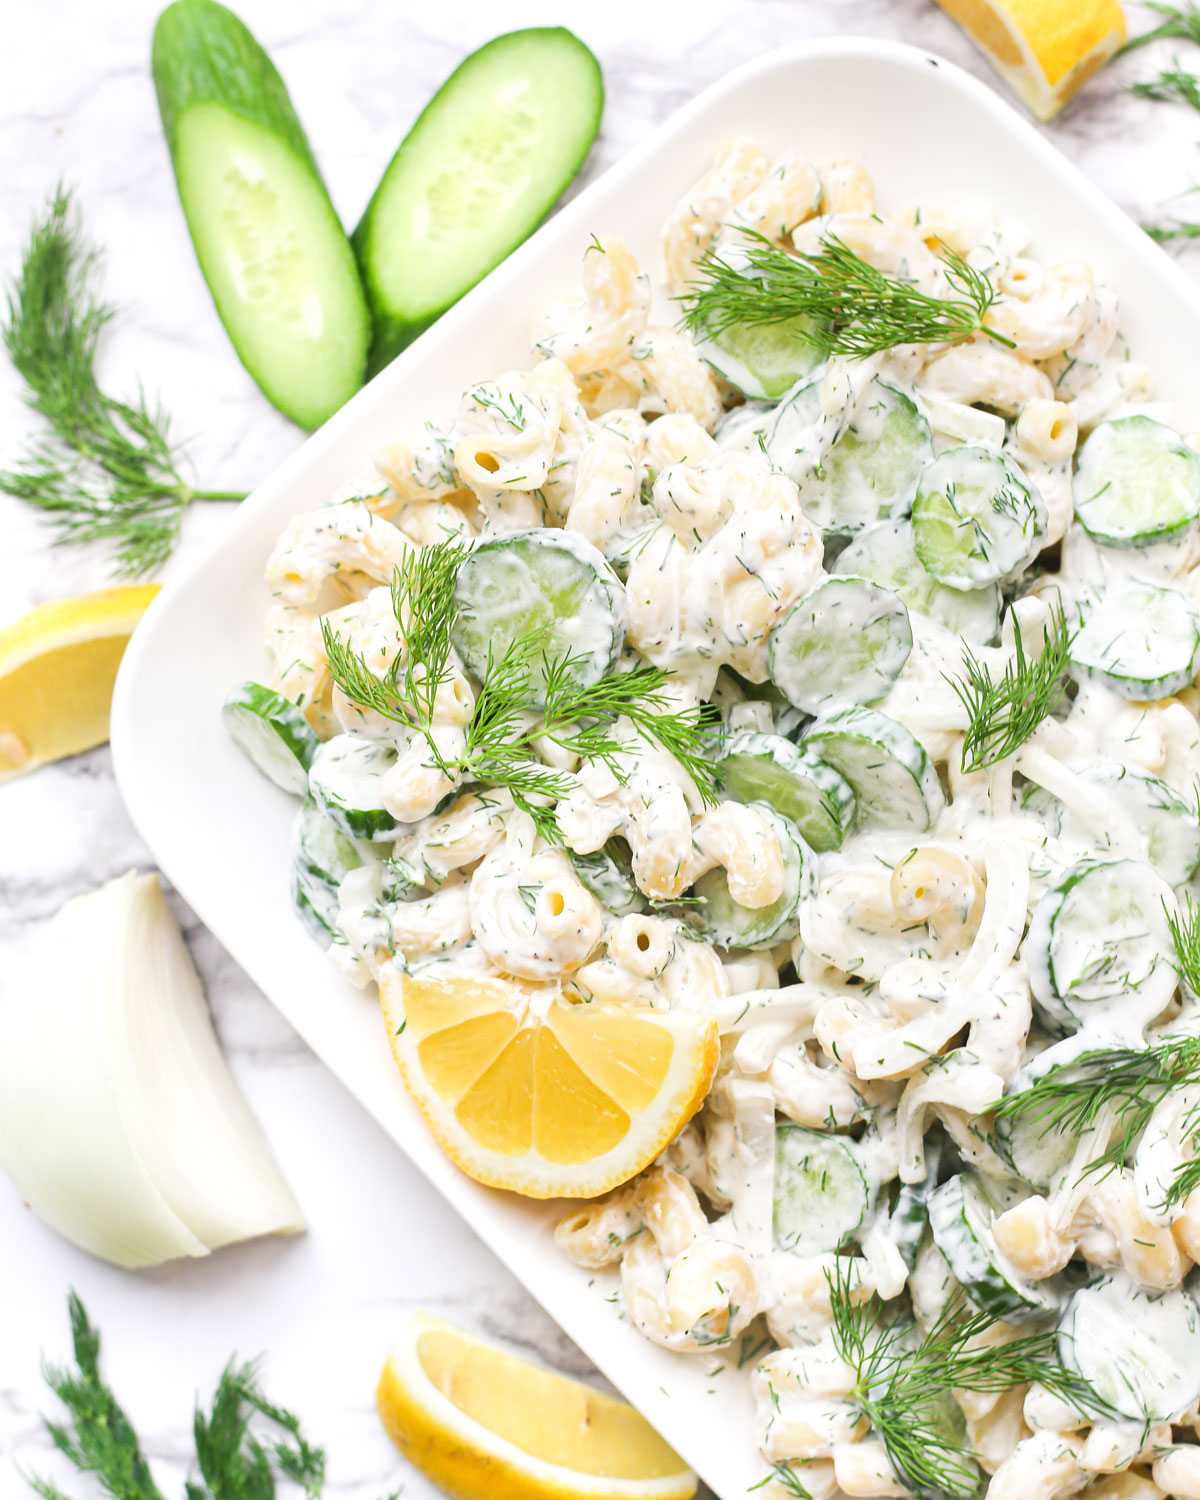 creamy cucumber pasta salad topped with fresh dill and lemon